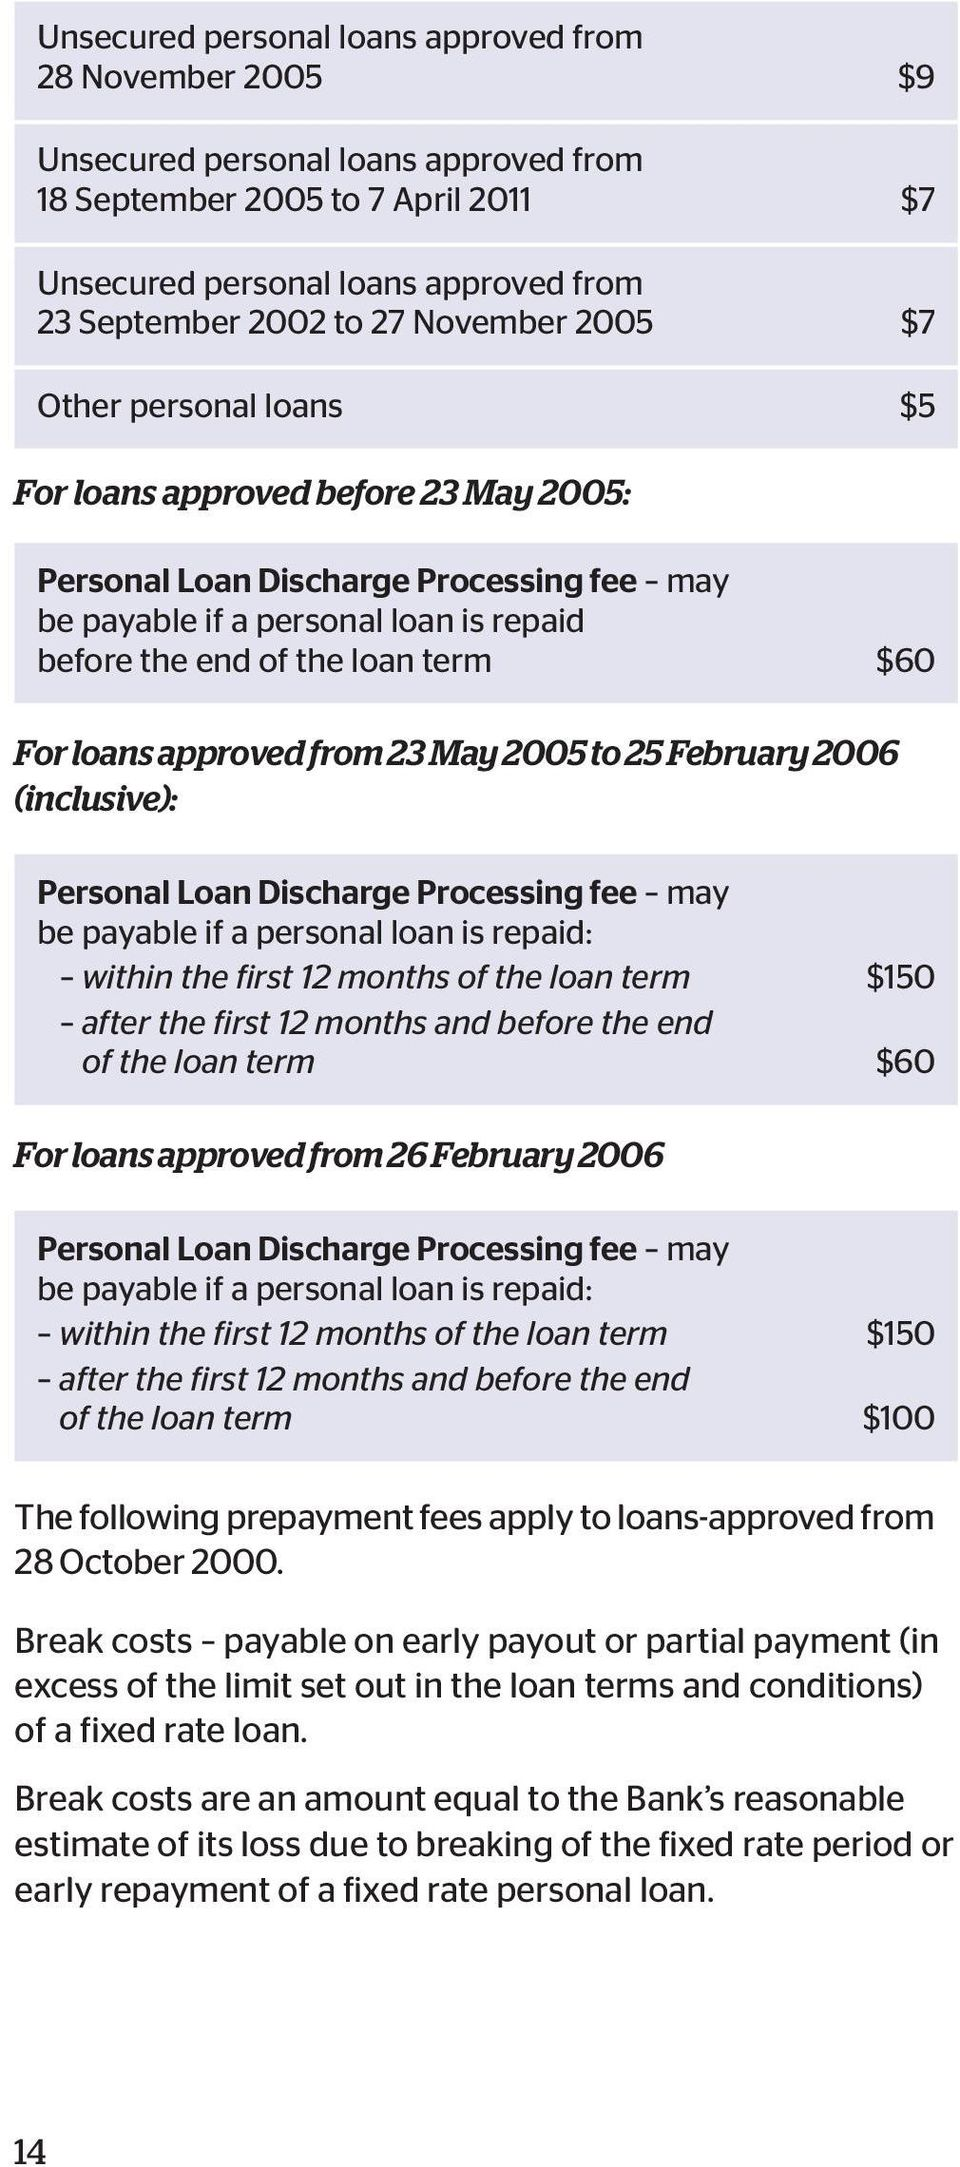 For loans approved from 23 May 2005 to 25 February 2006 (inclusive): Personal Loan Discharge Processing fee may be payable if a personal loan is repaid: within the first 12 months of the loan term